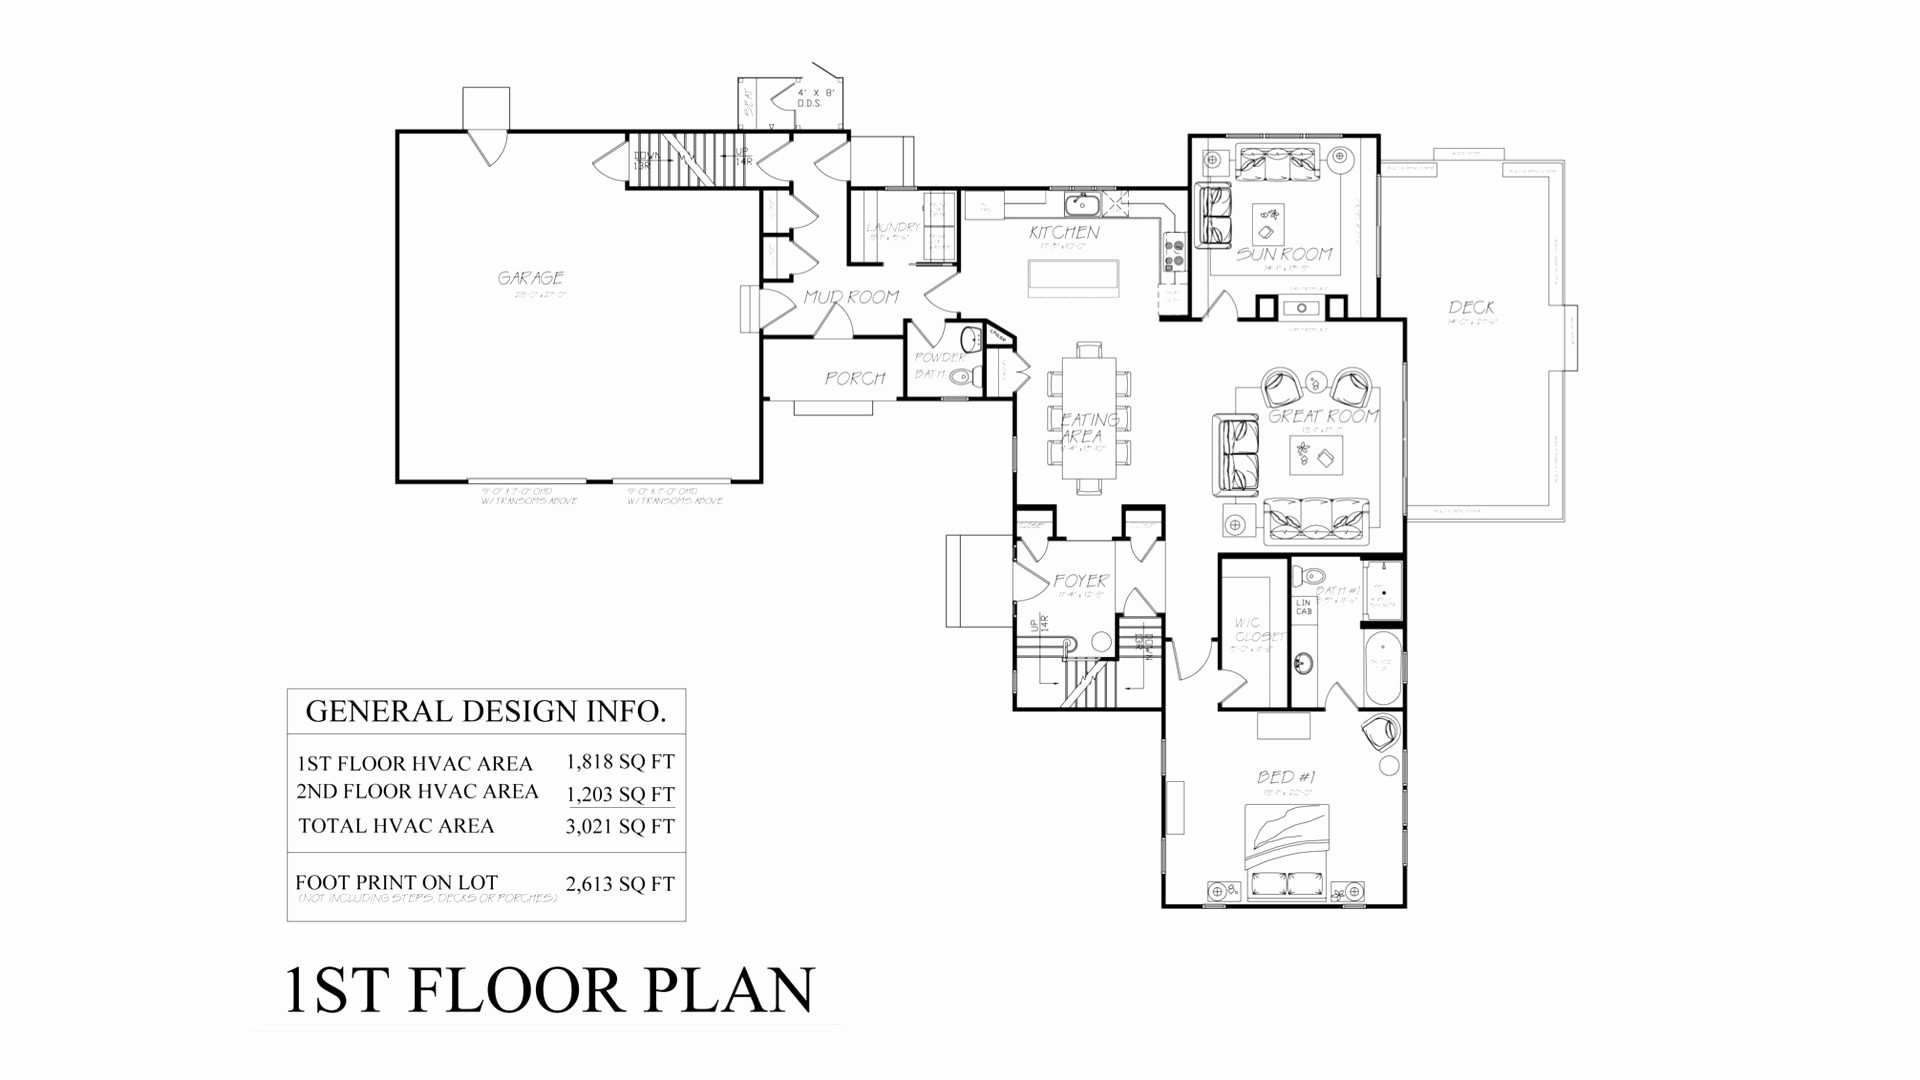 British Gas Home Plan Unique G 1 House Plan Best House Plans Round Home Design Awesome